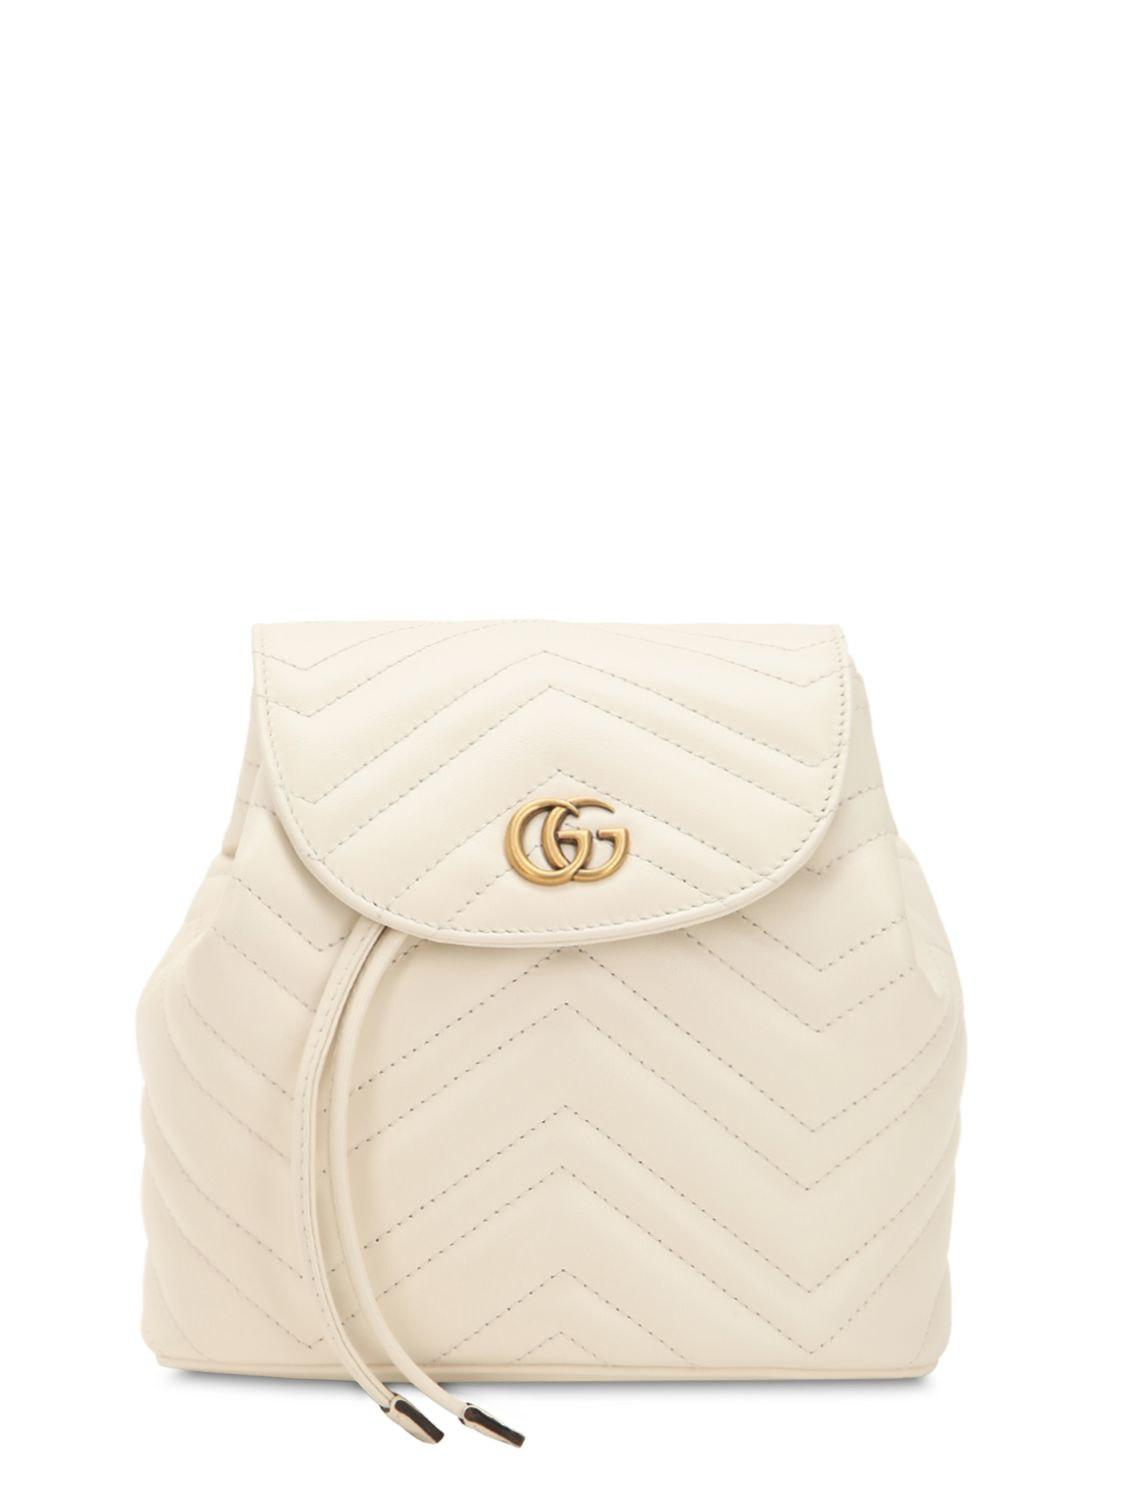 21129100011d Gucci Mini Gg Marmont Leather Backpack in White - Lyst